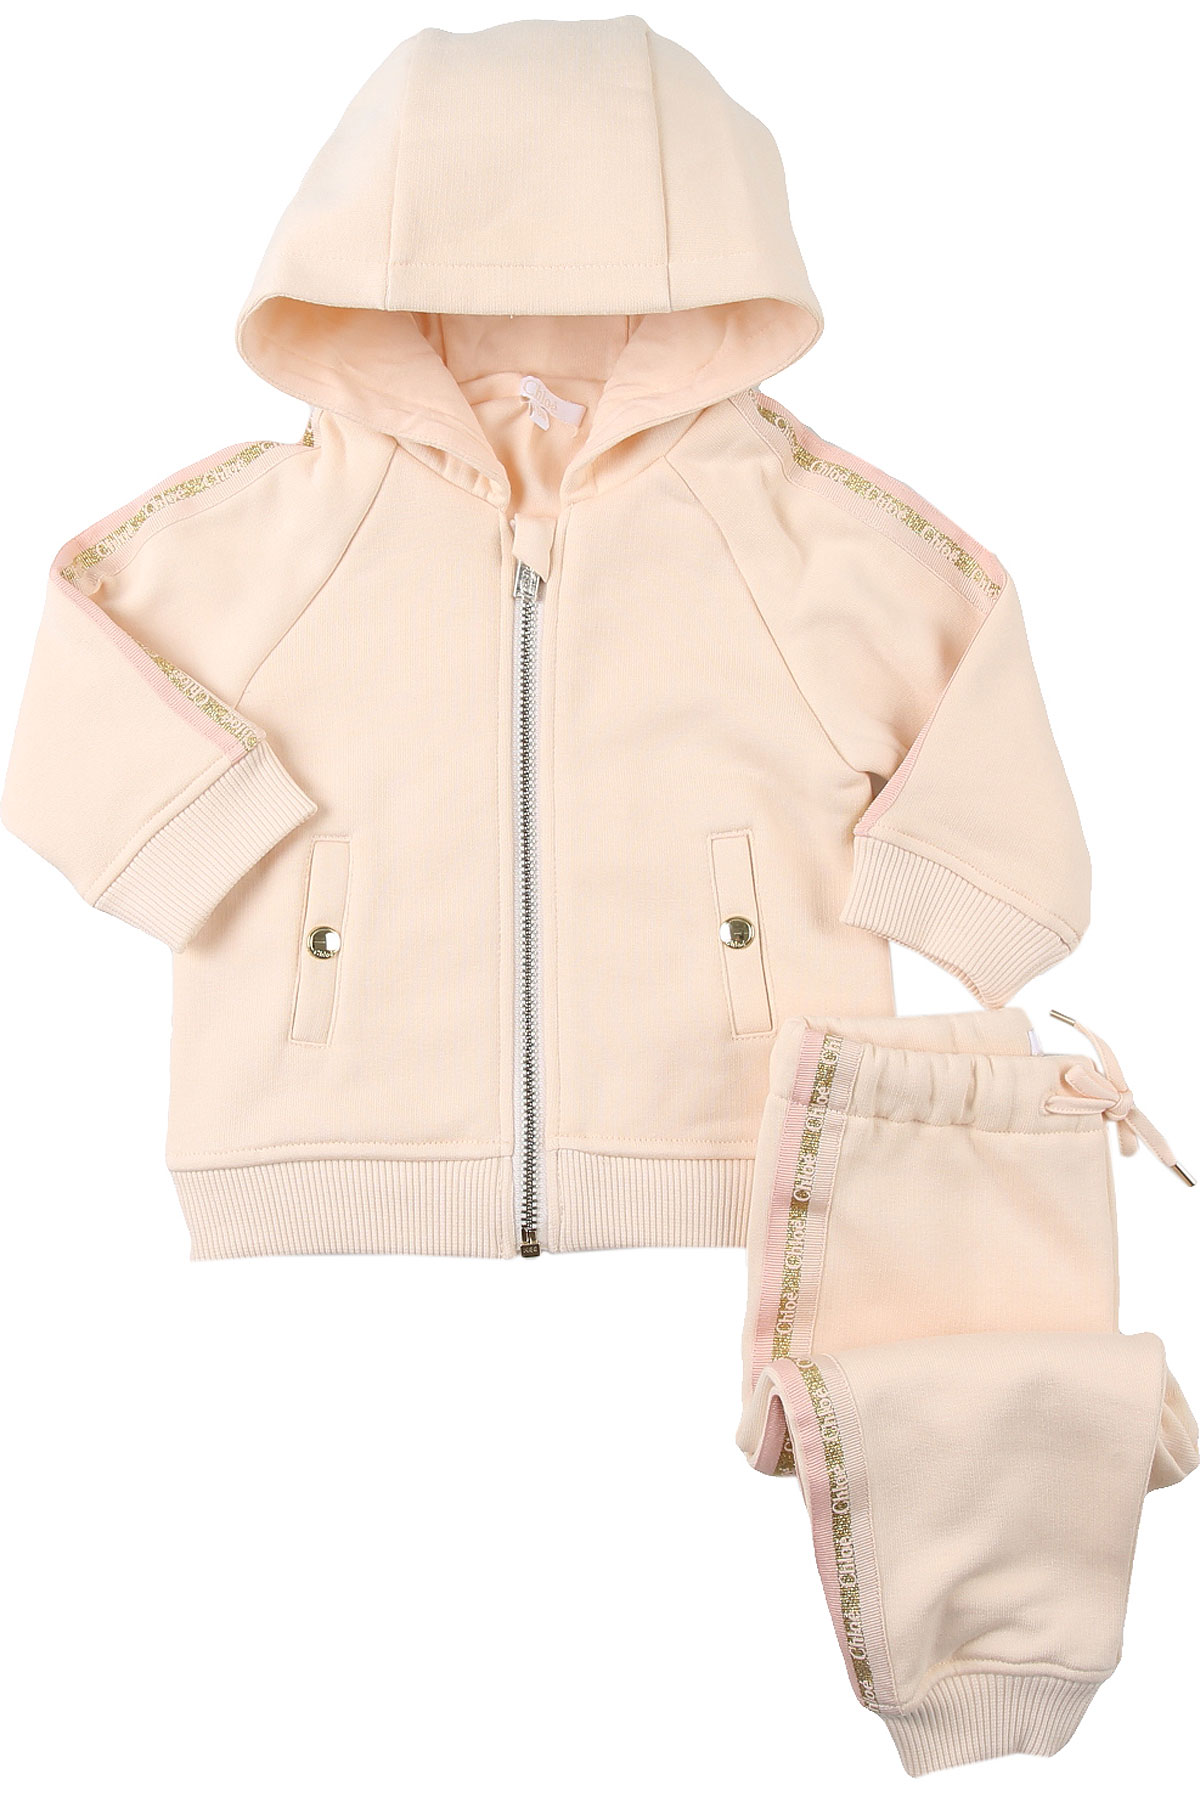 Chloe Baby Sets for Girls On Sale, Rose, Cotton, 2019, 12M 2Y 9M